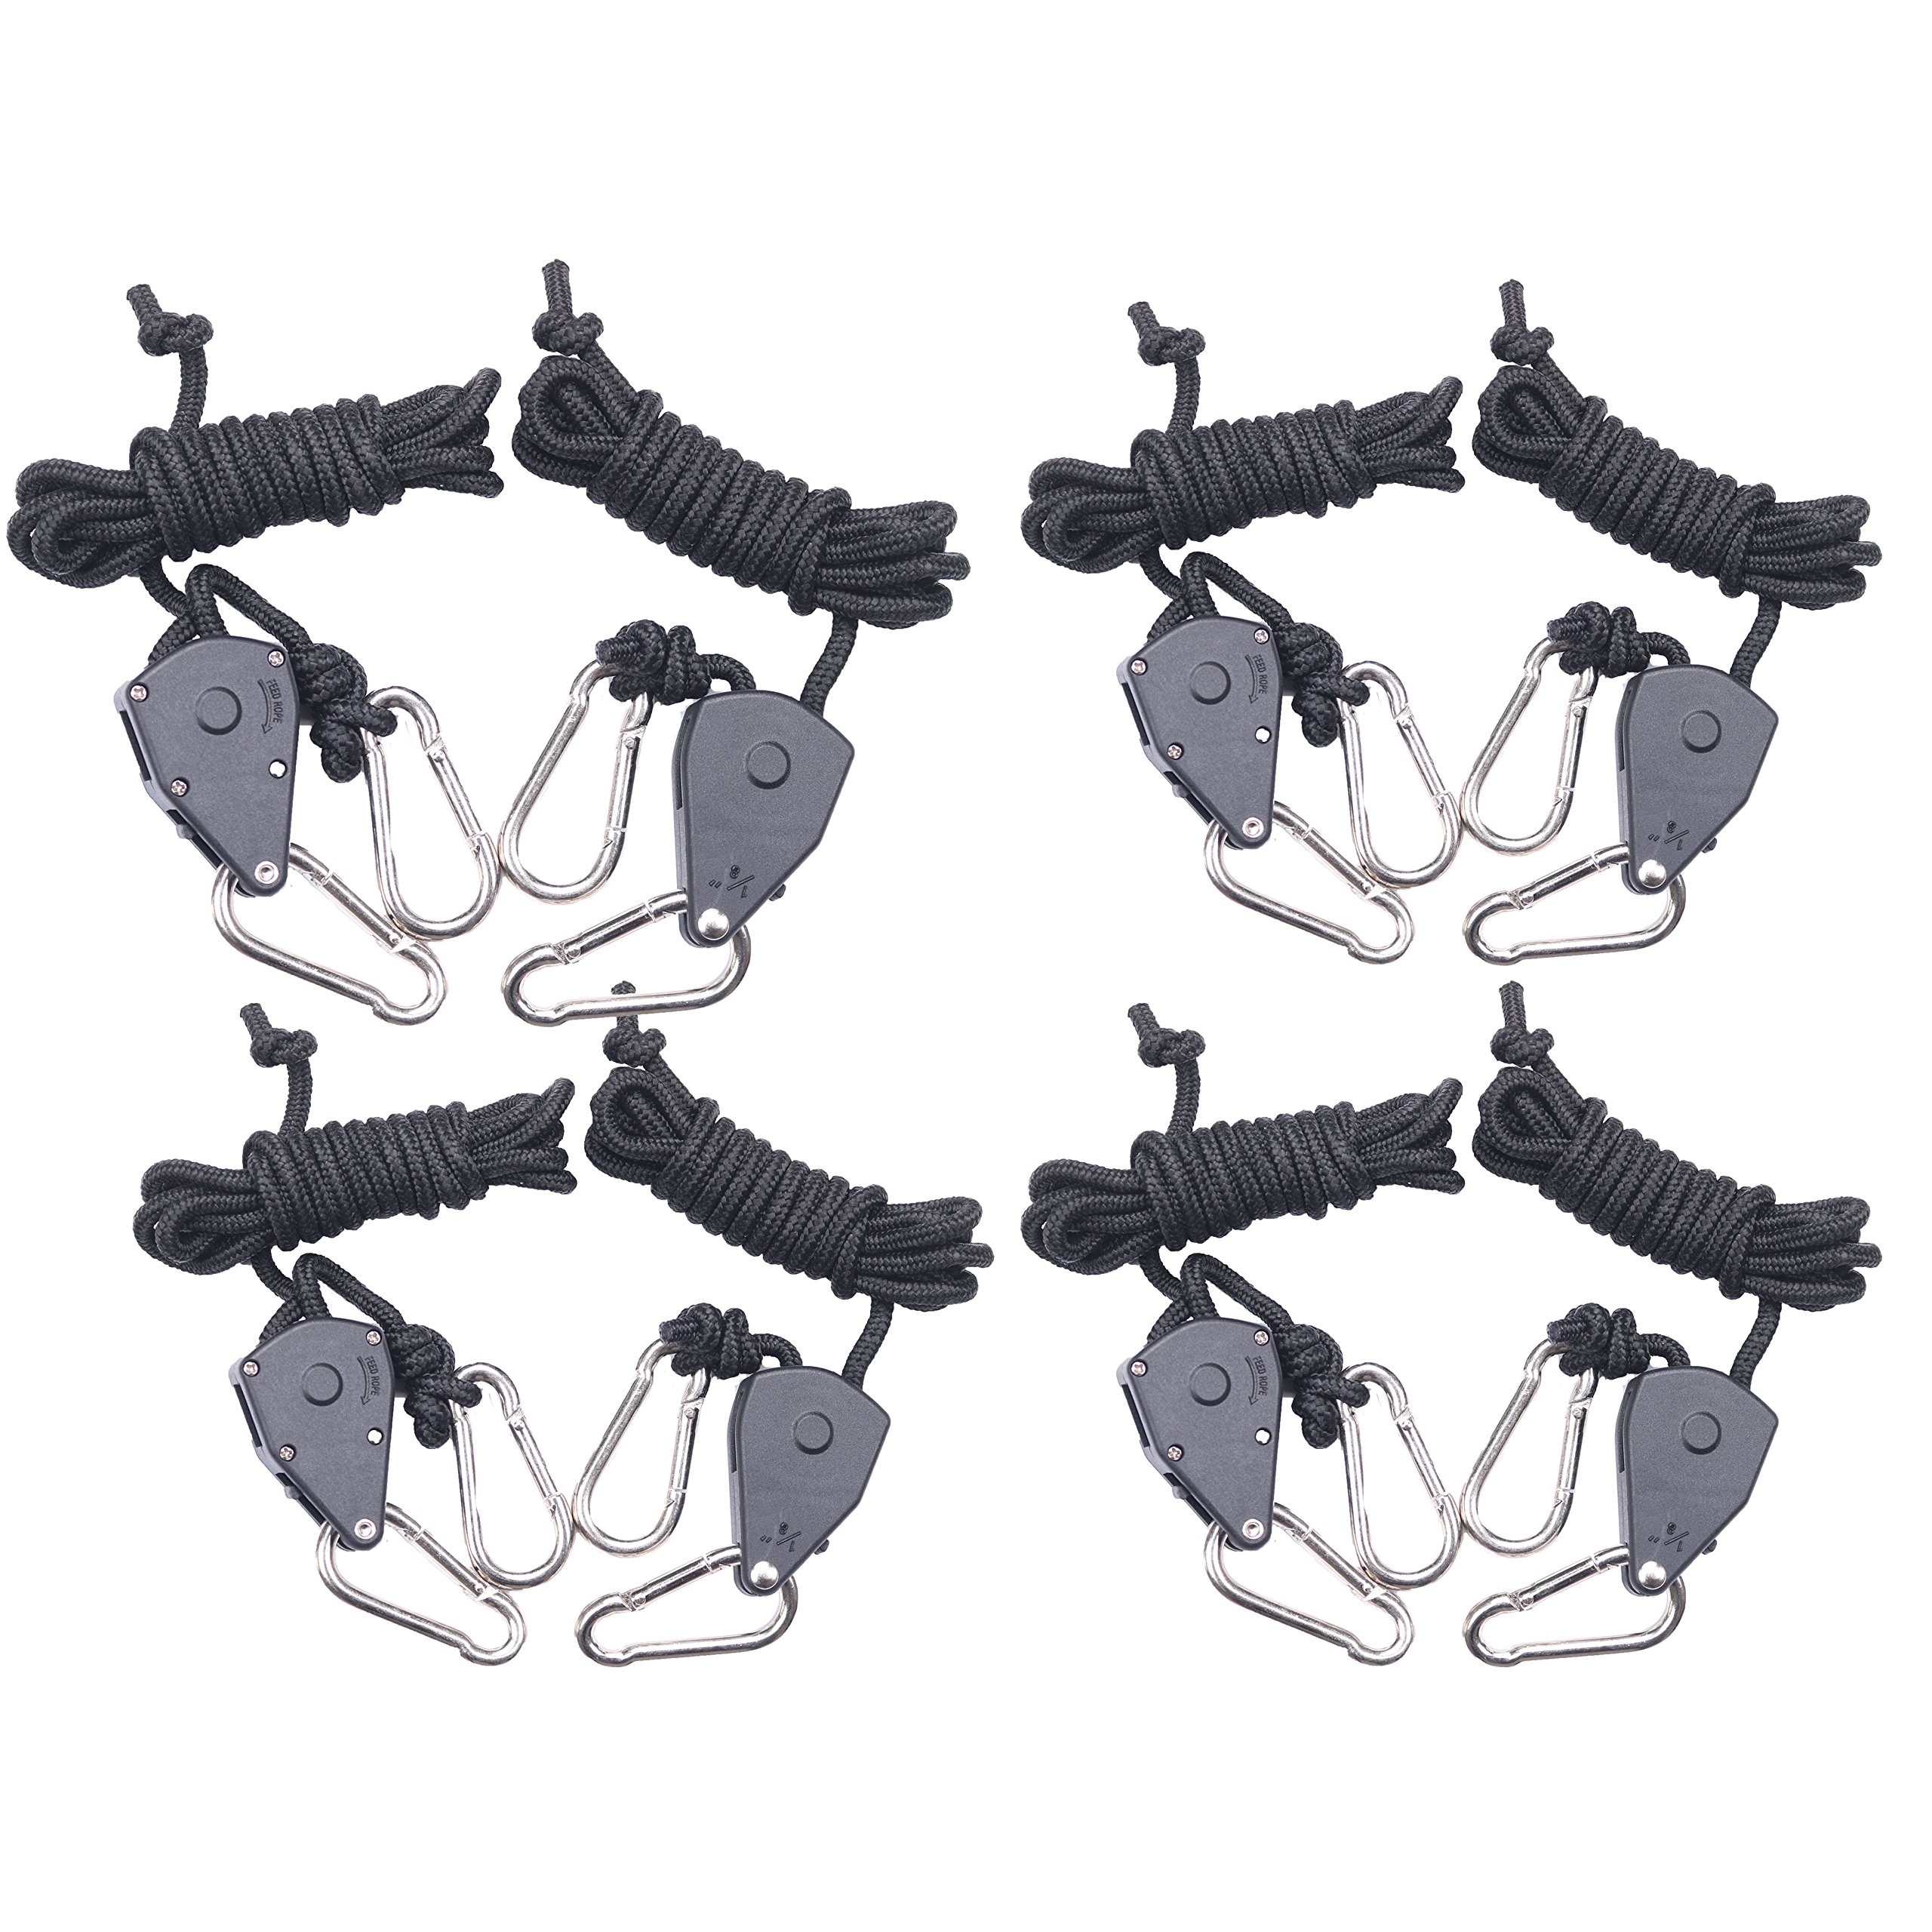 4-Pairs Zazzy 1/8 Inch Heavy Duty Adjustable Grow Light Rope Clip Hanger Rope Hanger